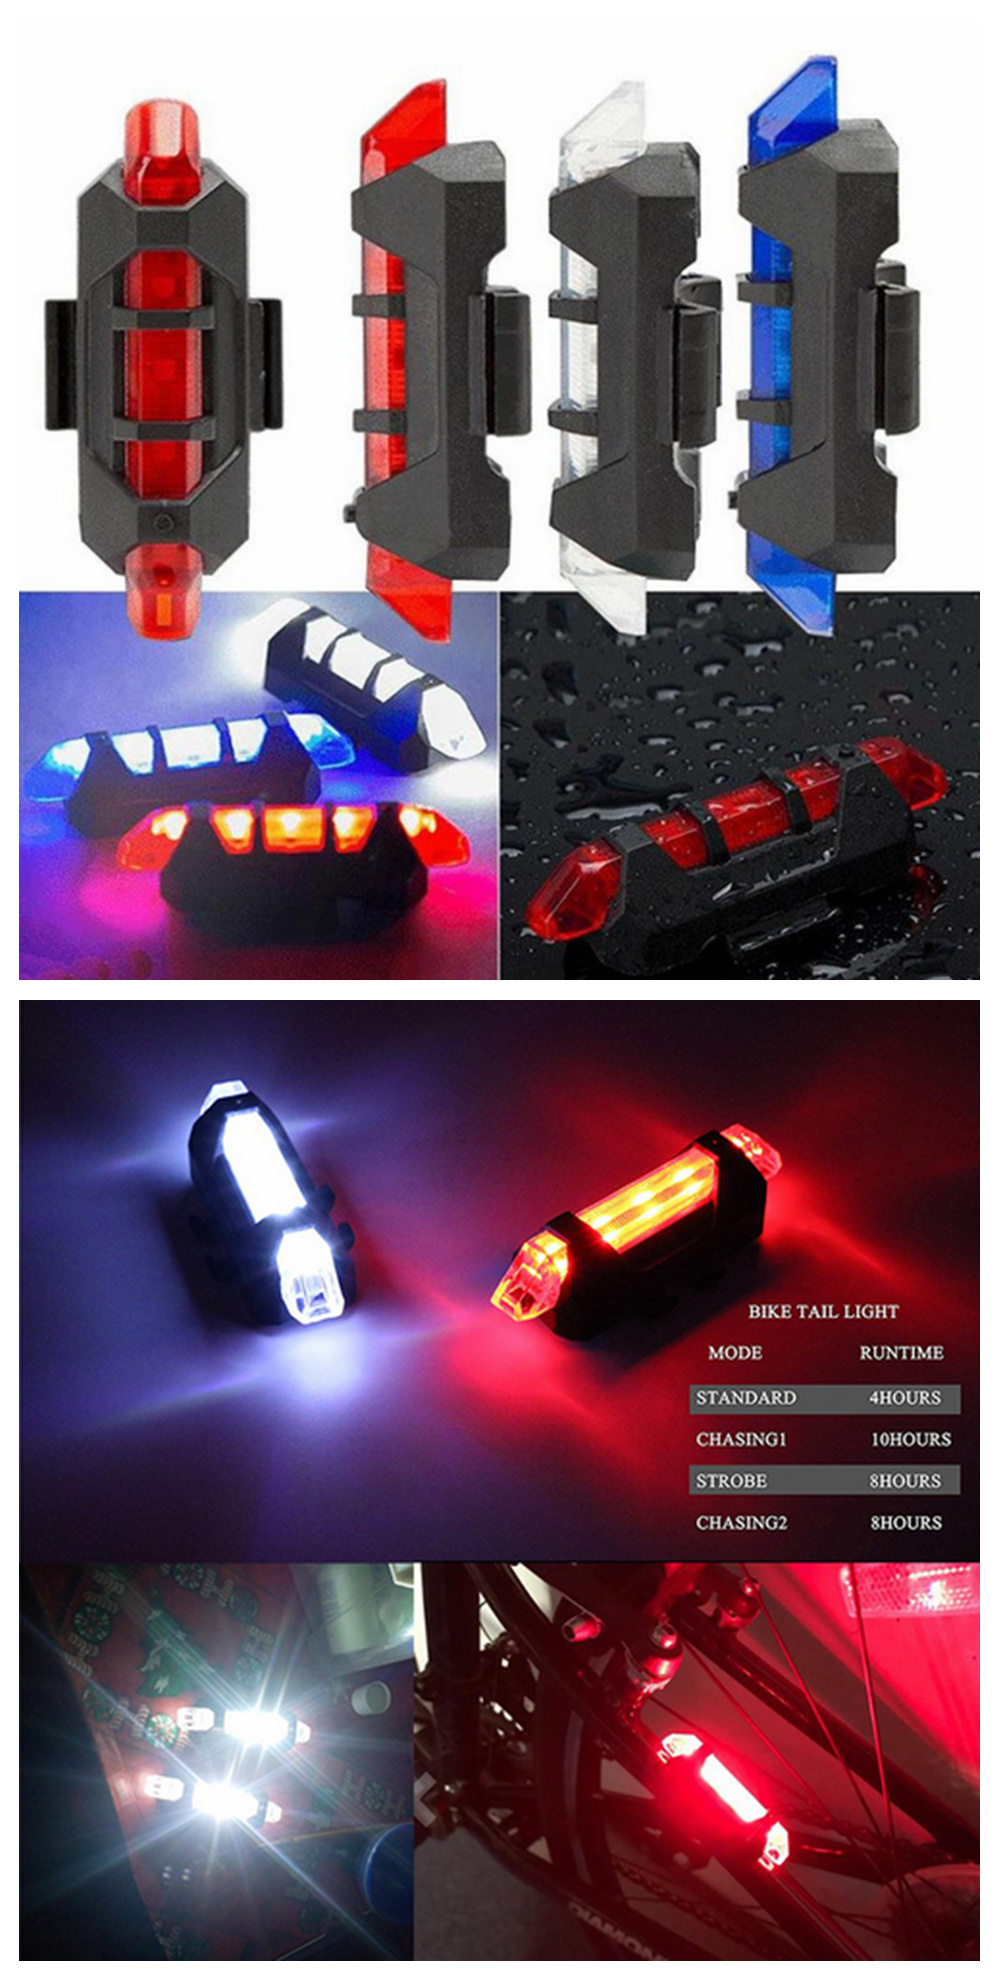 ZHISHUNJIA ZSJ-216 USB Charging Mini Warning Light Bicycle Taillight 2PCS- Blue